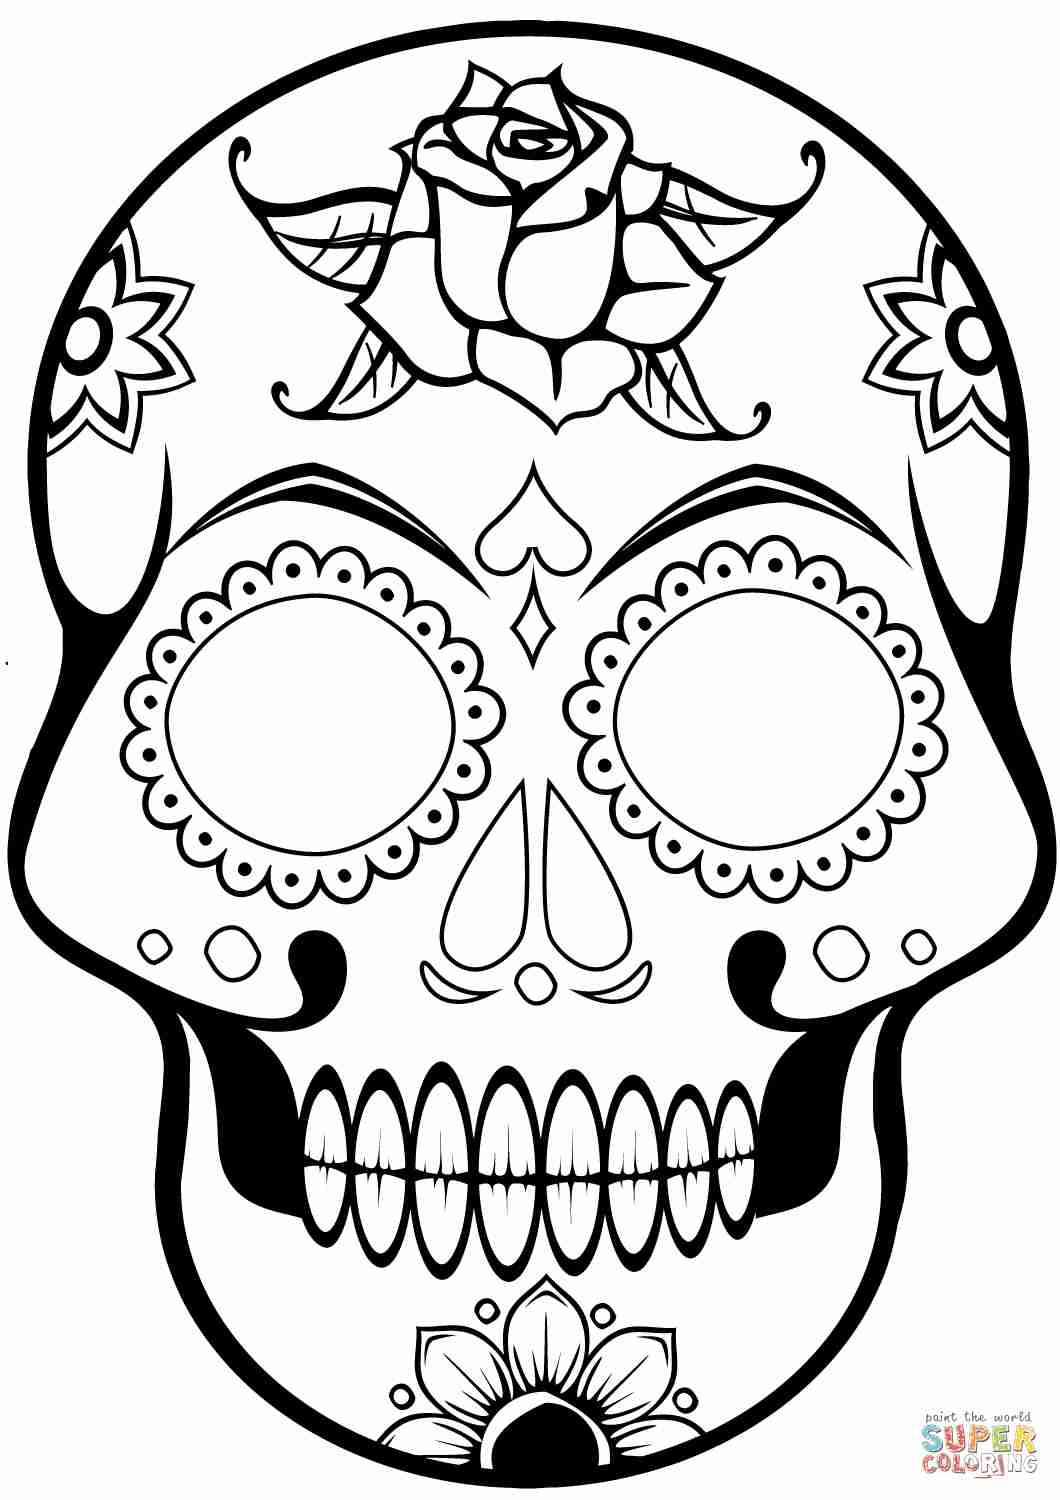 Tiny skull clipart jpg royalty free download Skulls And Hearts Drawings | Free download best Skulls And ... jpg royalty free download